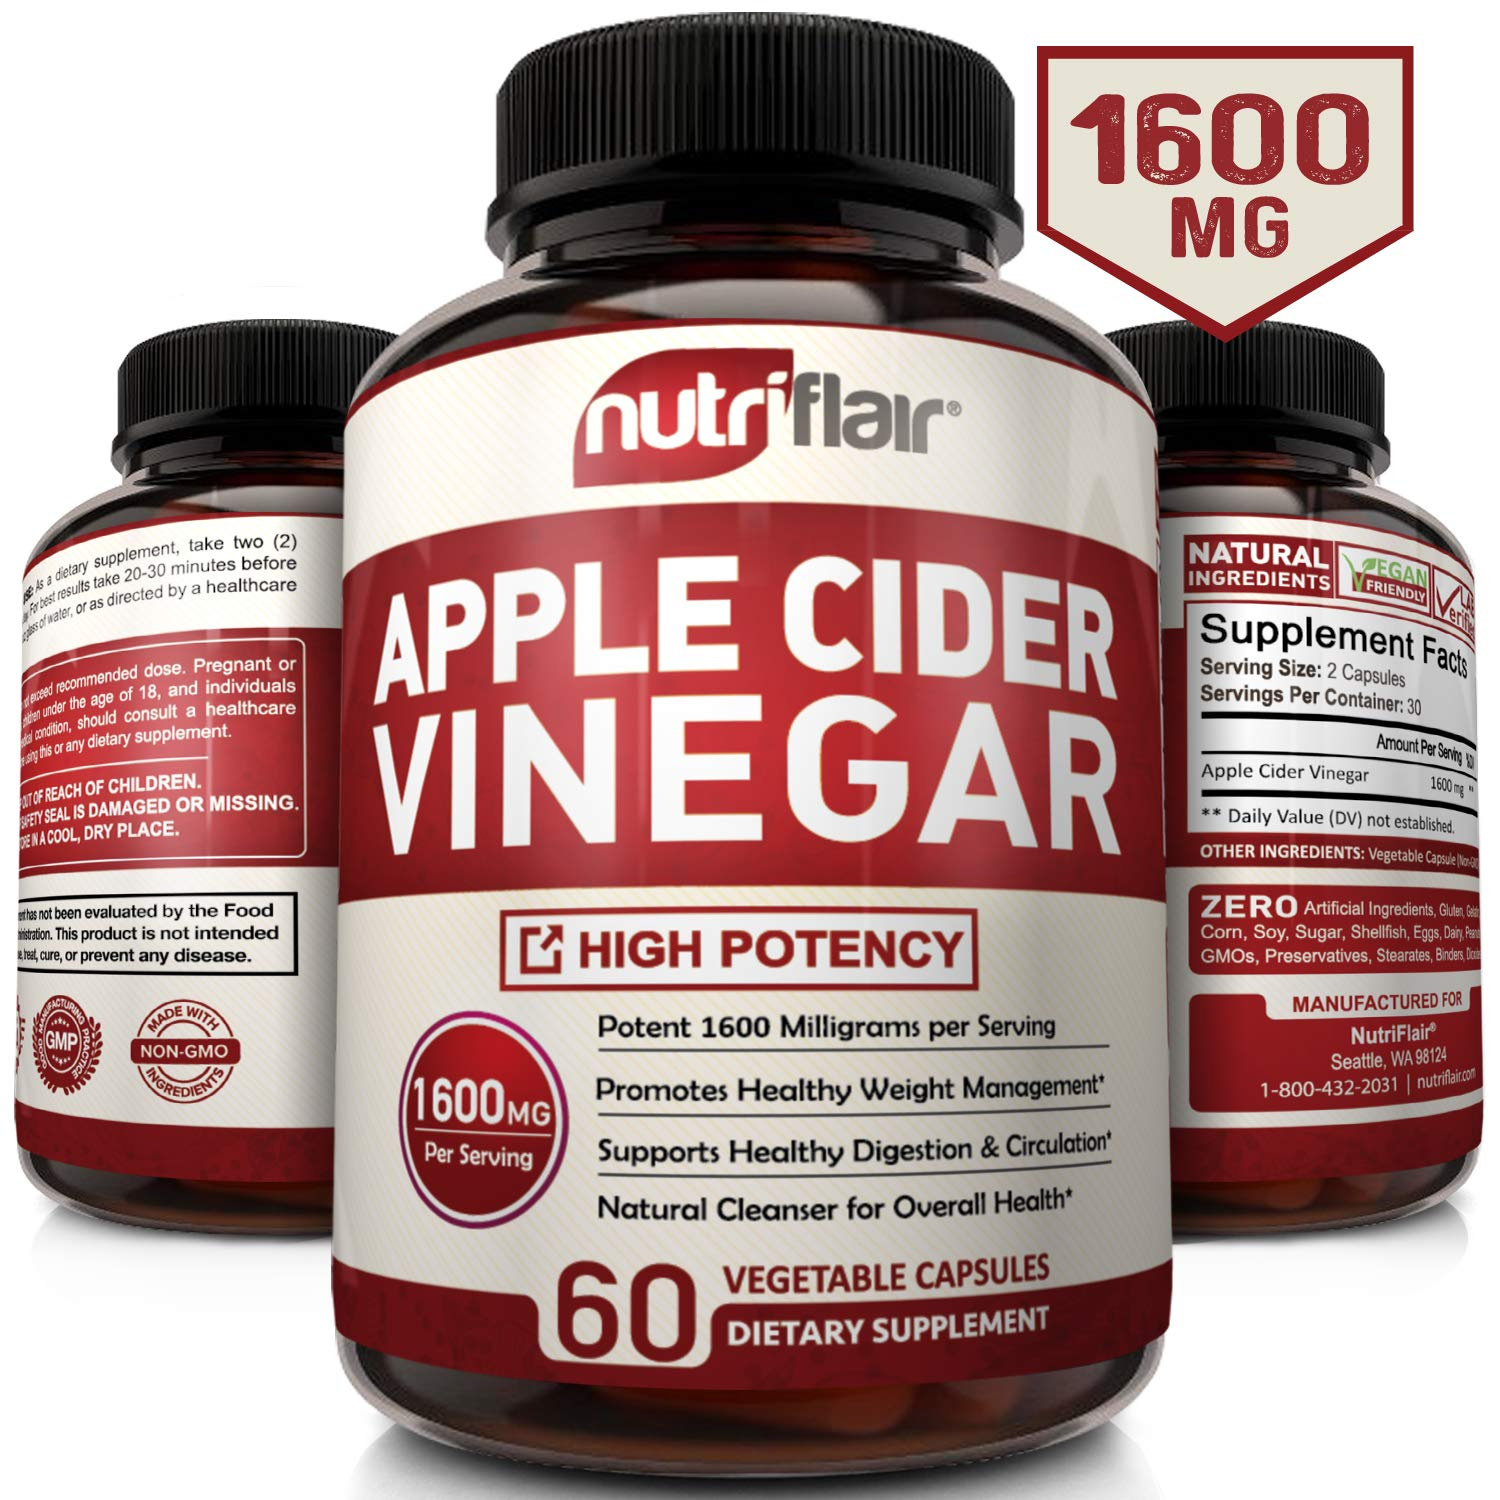 Apple Cider Vinegar Pills 1600MG - Powerful ACV Capsules for Natural Weight Loss, Detox, Digestion - Supports Healthy Blood Sugar & Immune System by NutriFlair